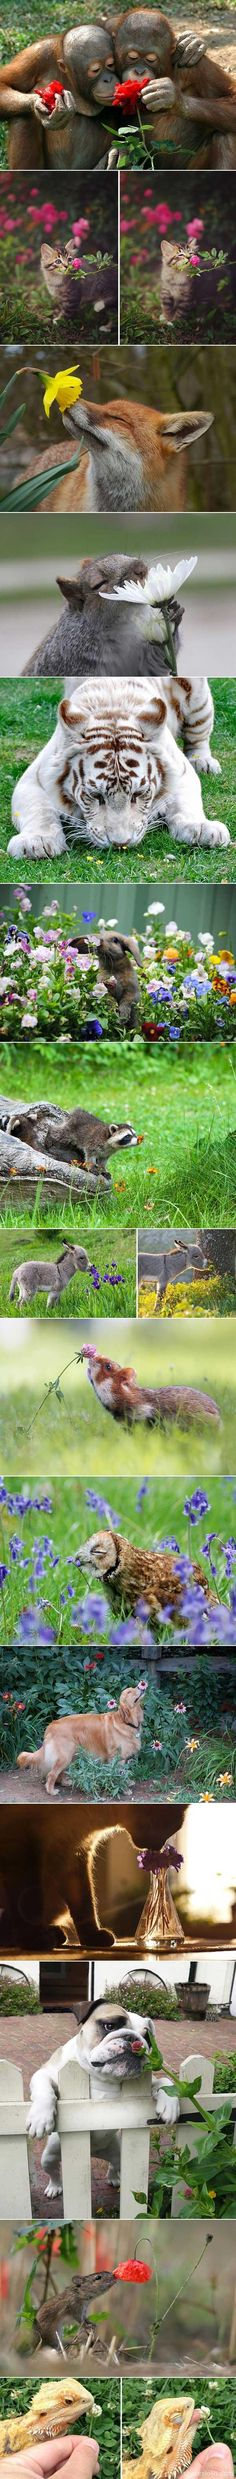 Animals+Smelling+Flowers+–+So+Cute!